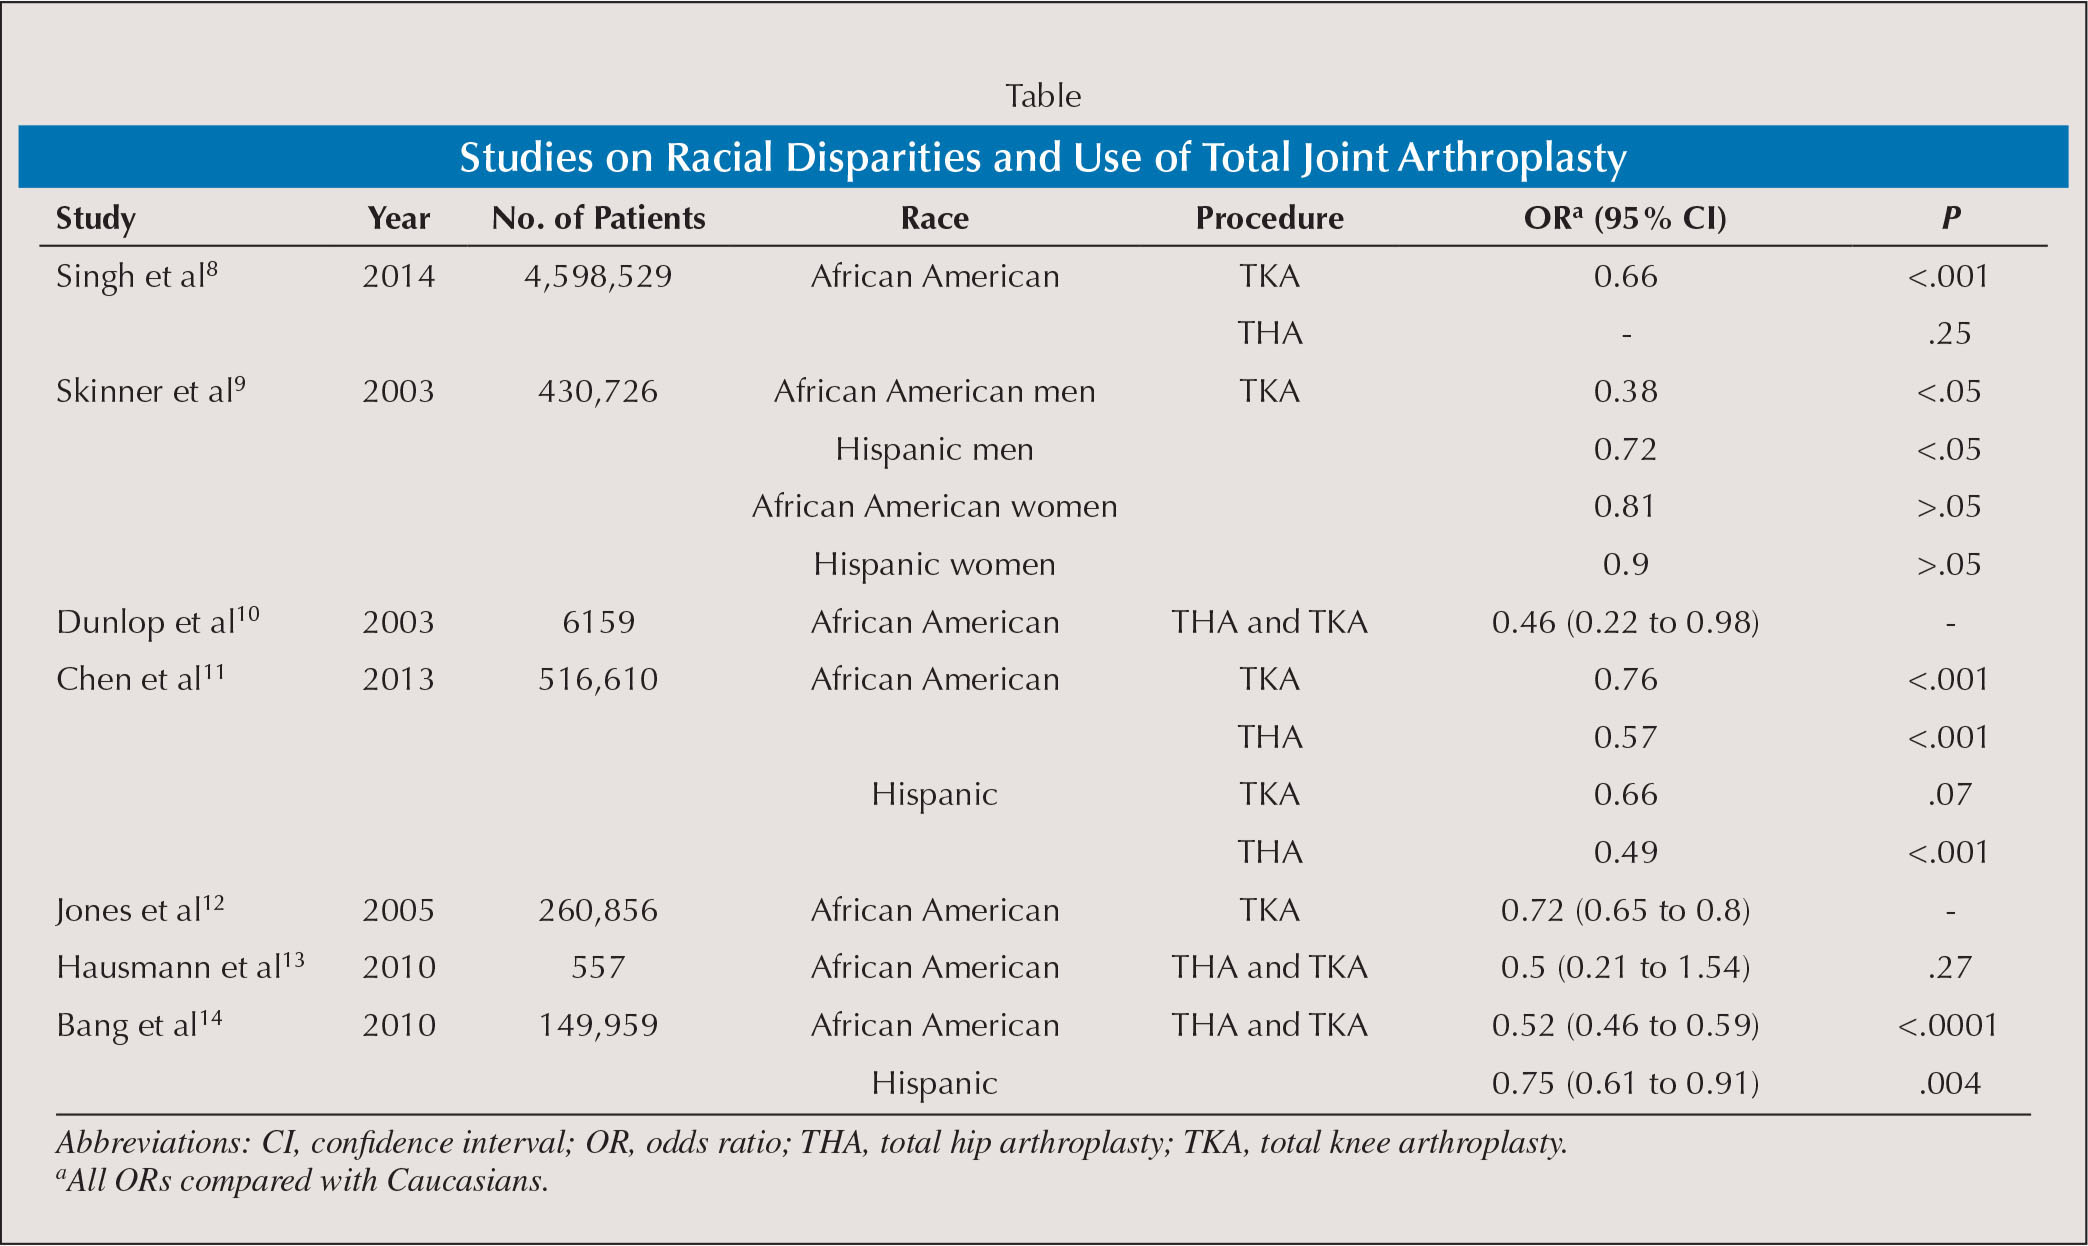 Studies on Racial Disparities and Use of Total Joint Arthroplasty